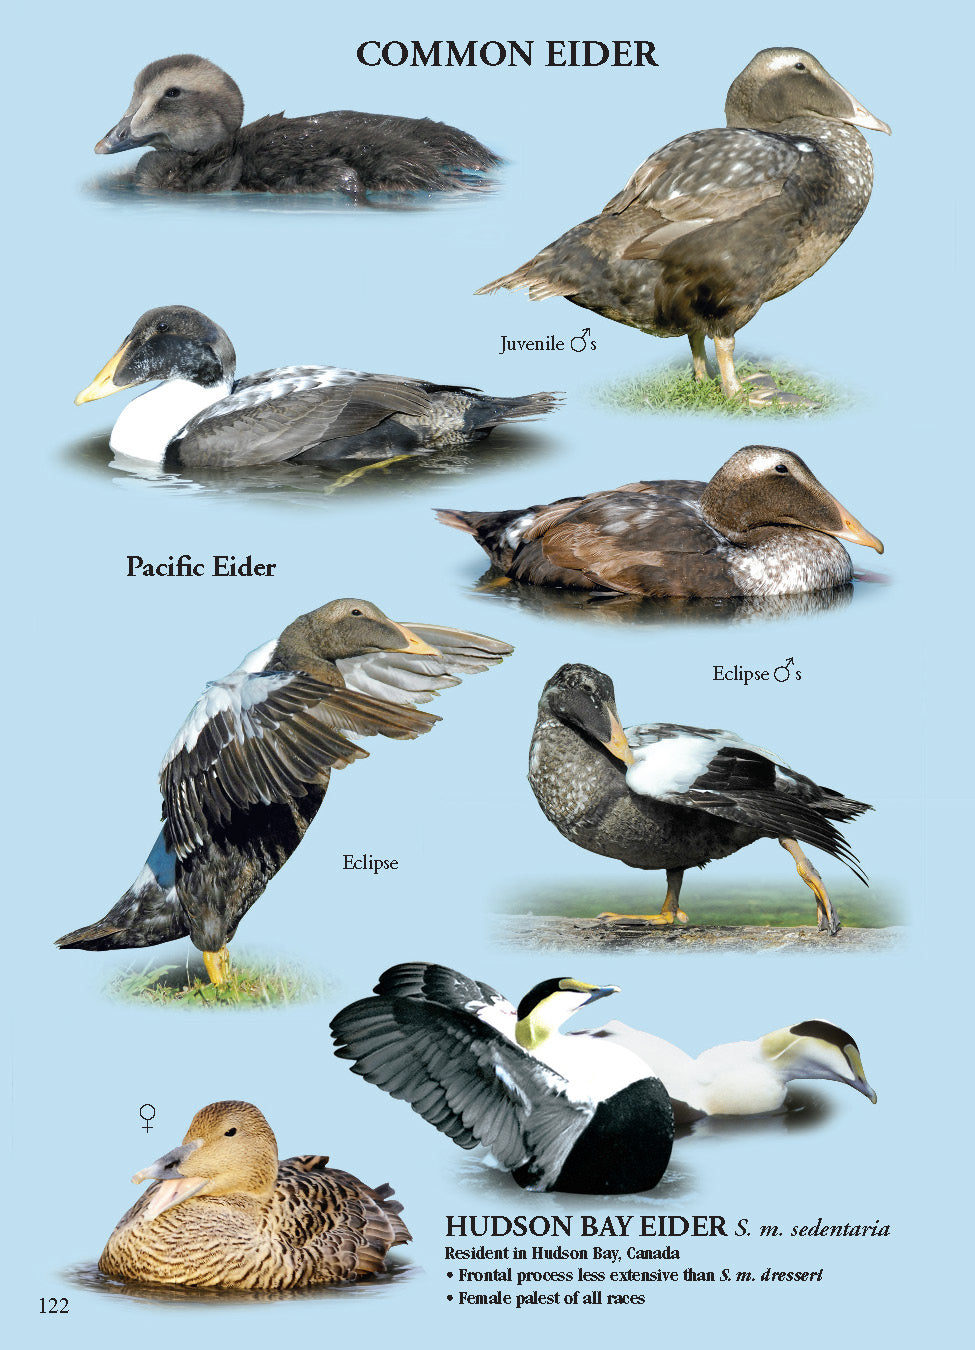 North American Ducks, Geese & Swans: identification guide